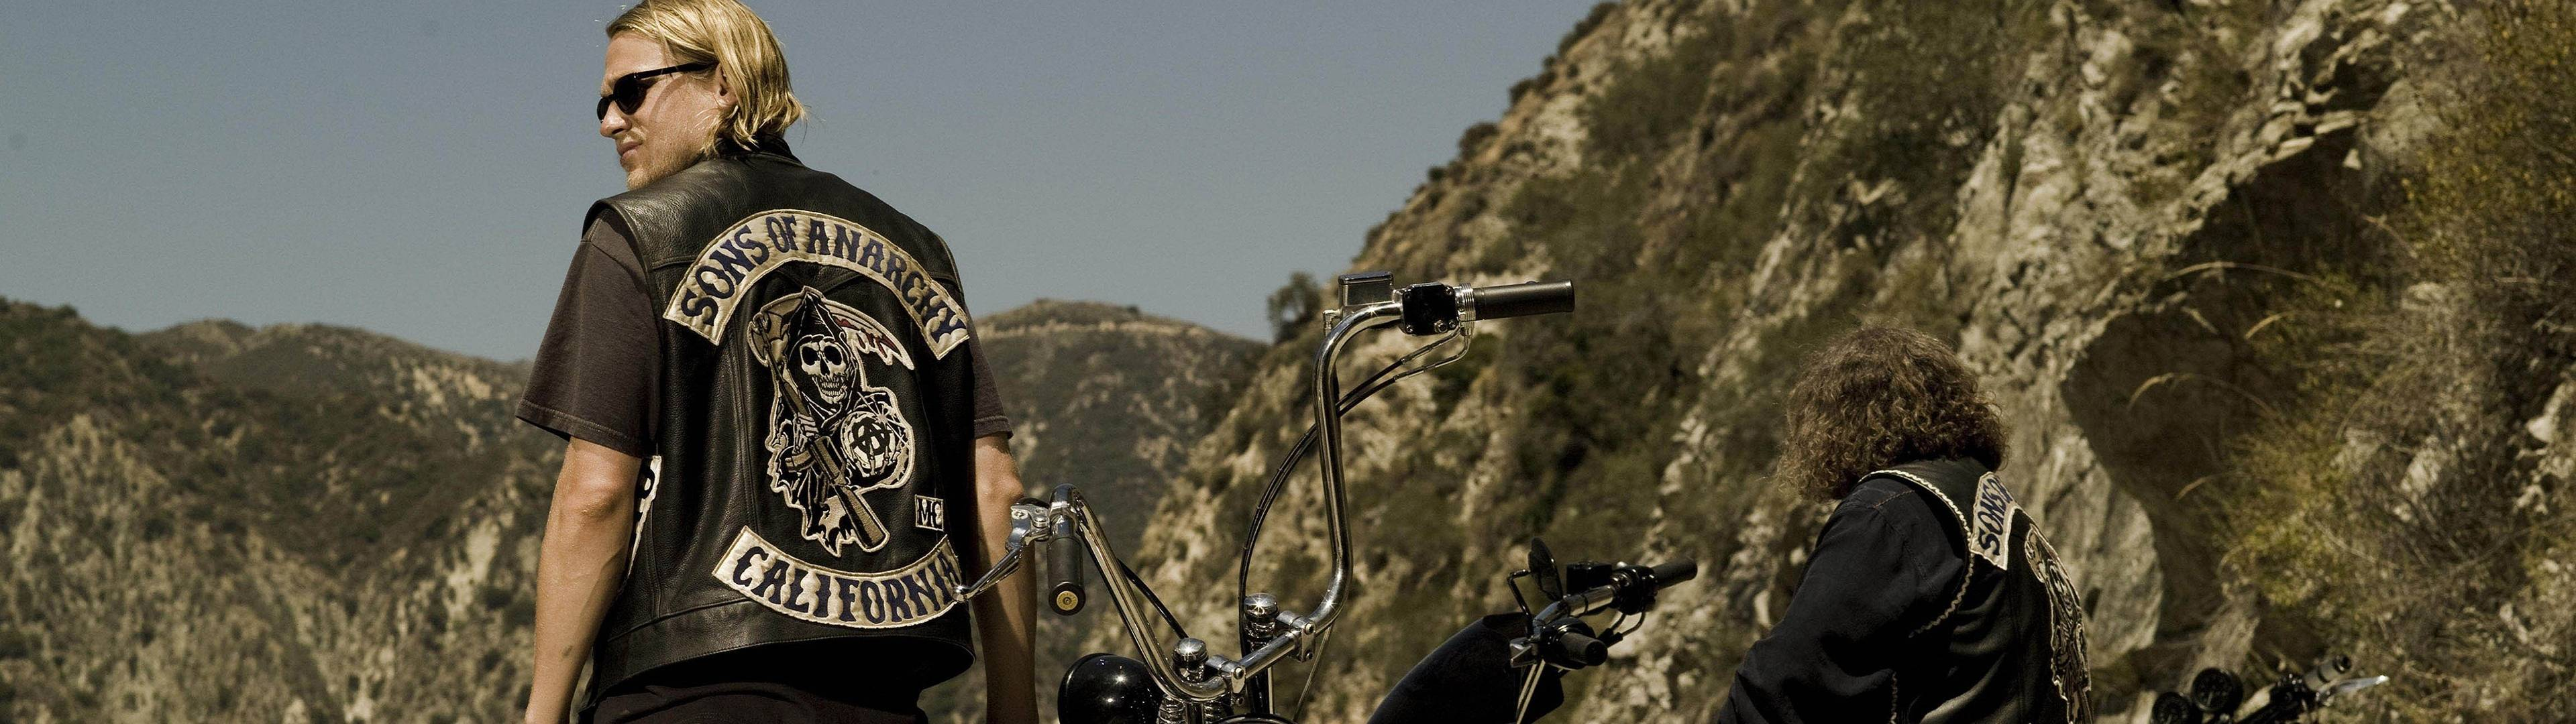 Sons Of Anarchy Quotes And Sayings Tv show - sons of anarchy Gemma ... Zooey Deschanel And Ben Gibbard Wedding